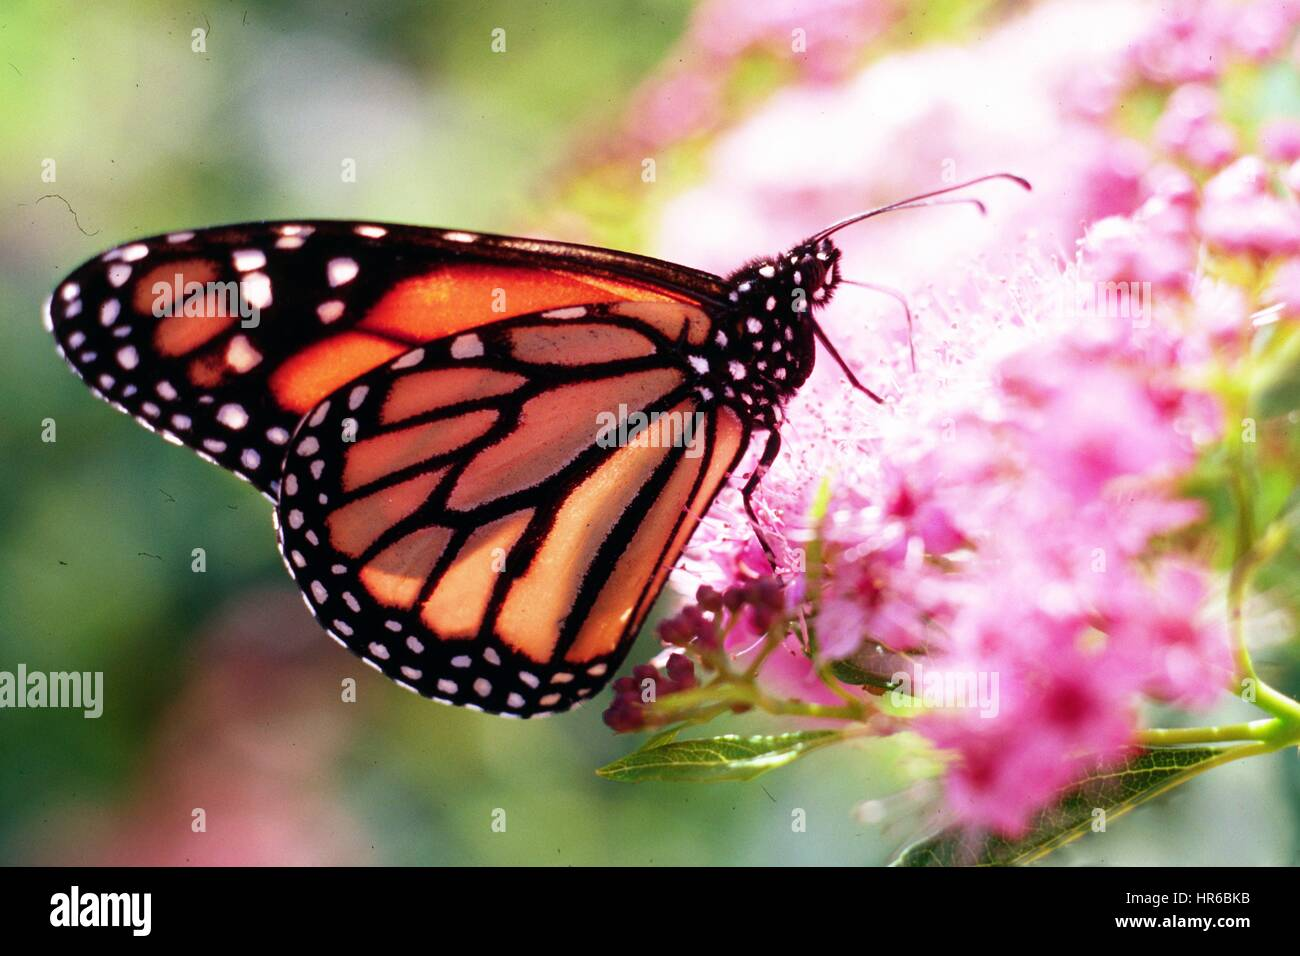 A Monarch Butterfly Collects Nectar From A Flower In The Peopleu0027s Garden,  Washington, D.C. Image Courtesy Charles Bryson/USDA, 2014